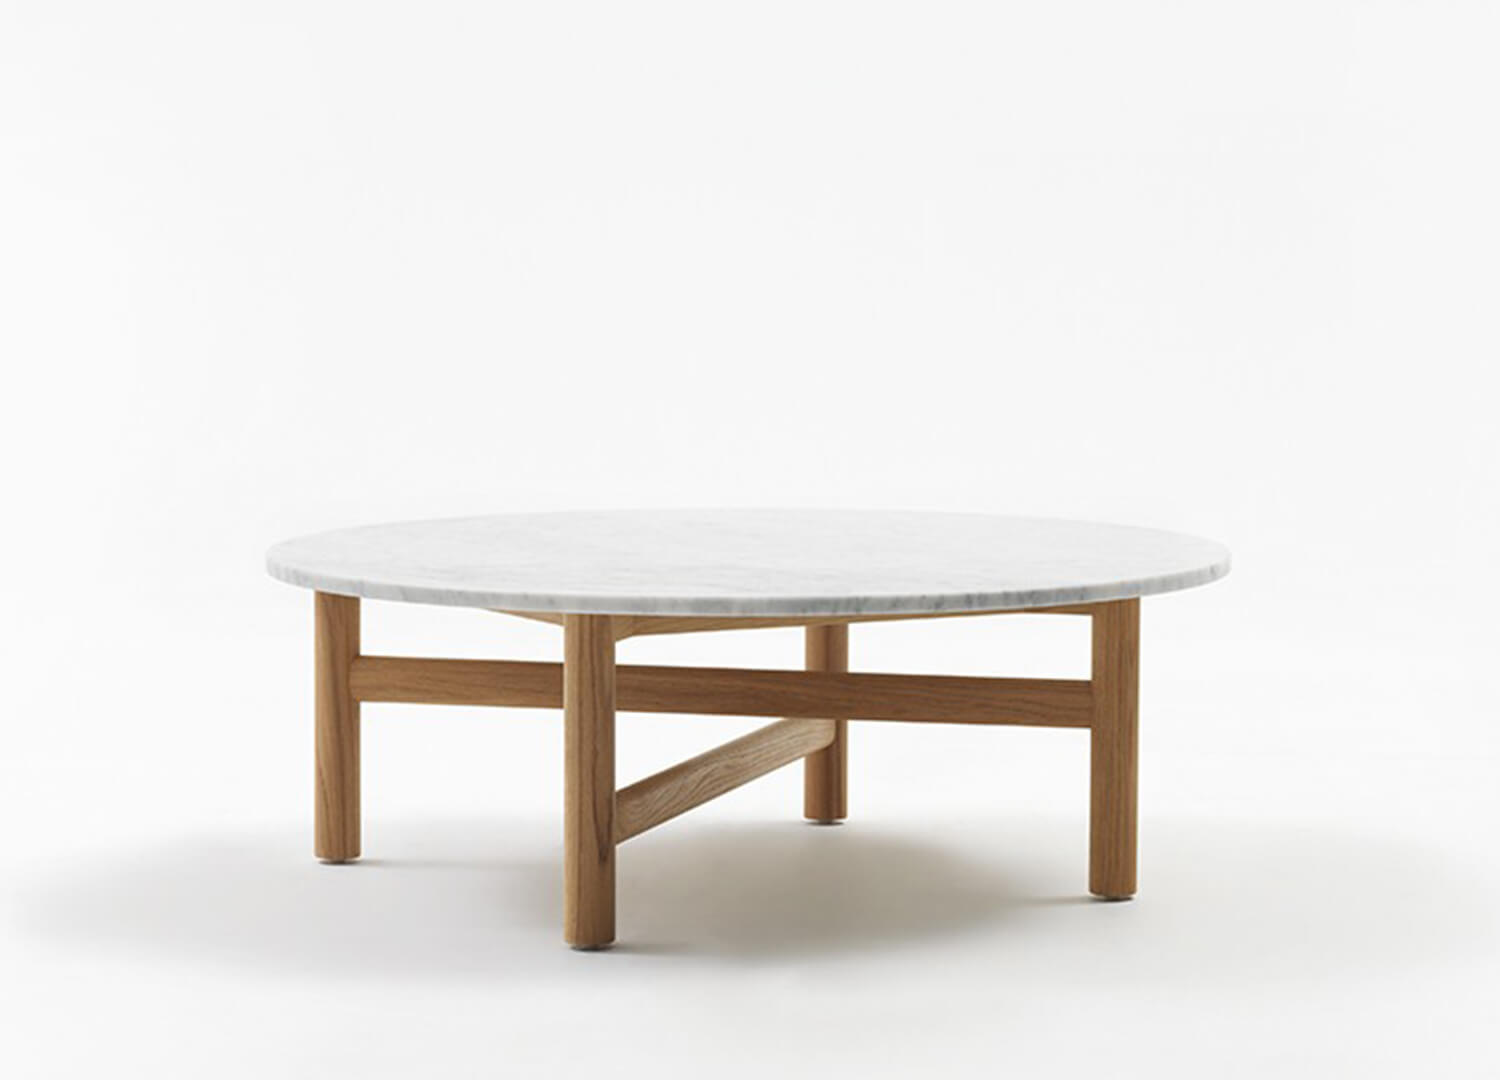 Sidney Raw Table by Jardan